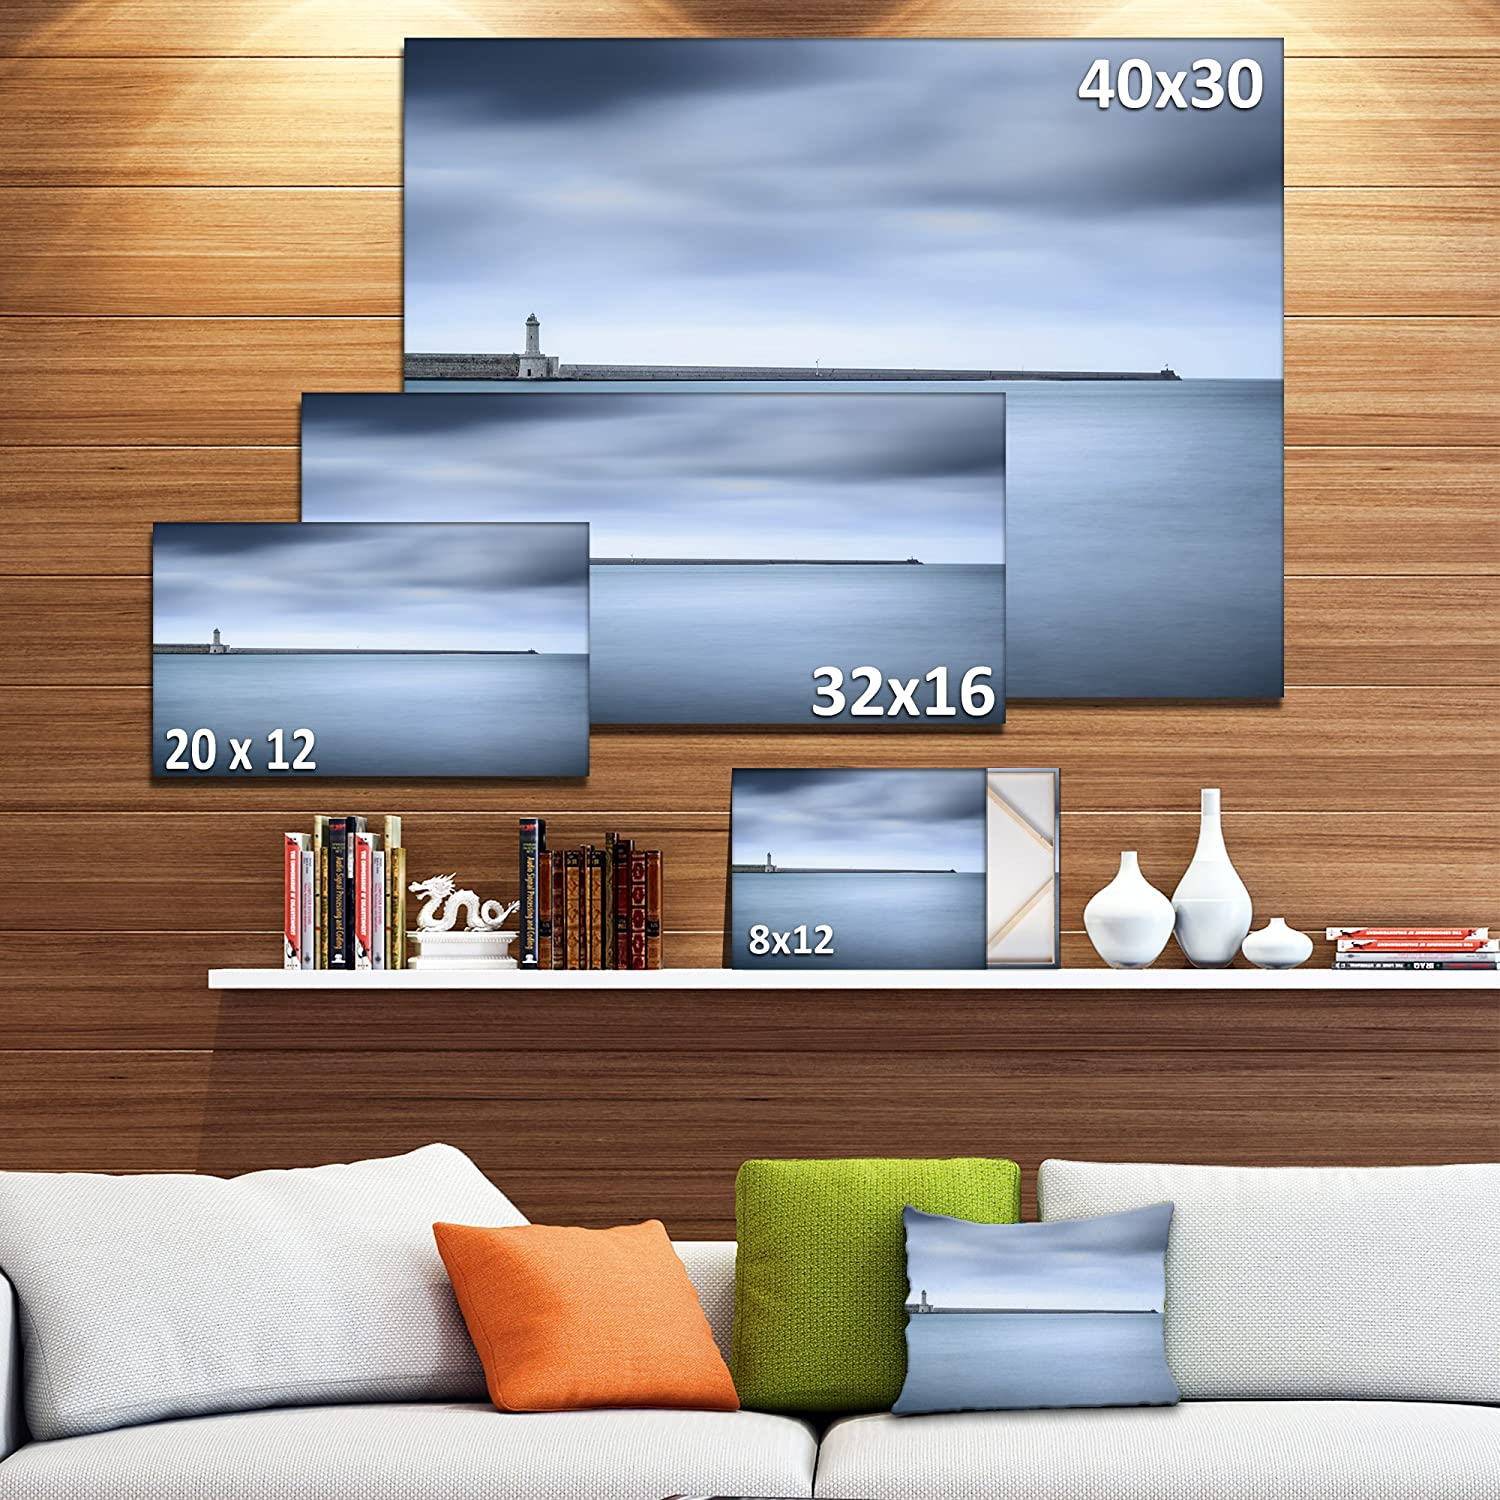 Amazon Com Designart Pt11333 20 12 Breakwater And Soft Water Under Clouds Oversized Landscape Wall Art Print 20x12 12 H X 20 W X 1 D 1p Posters Prints